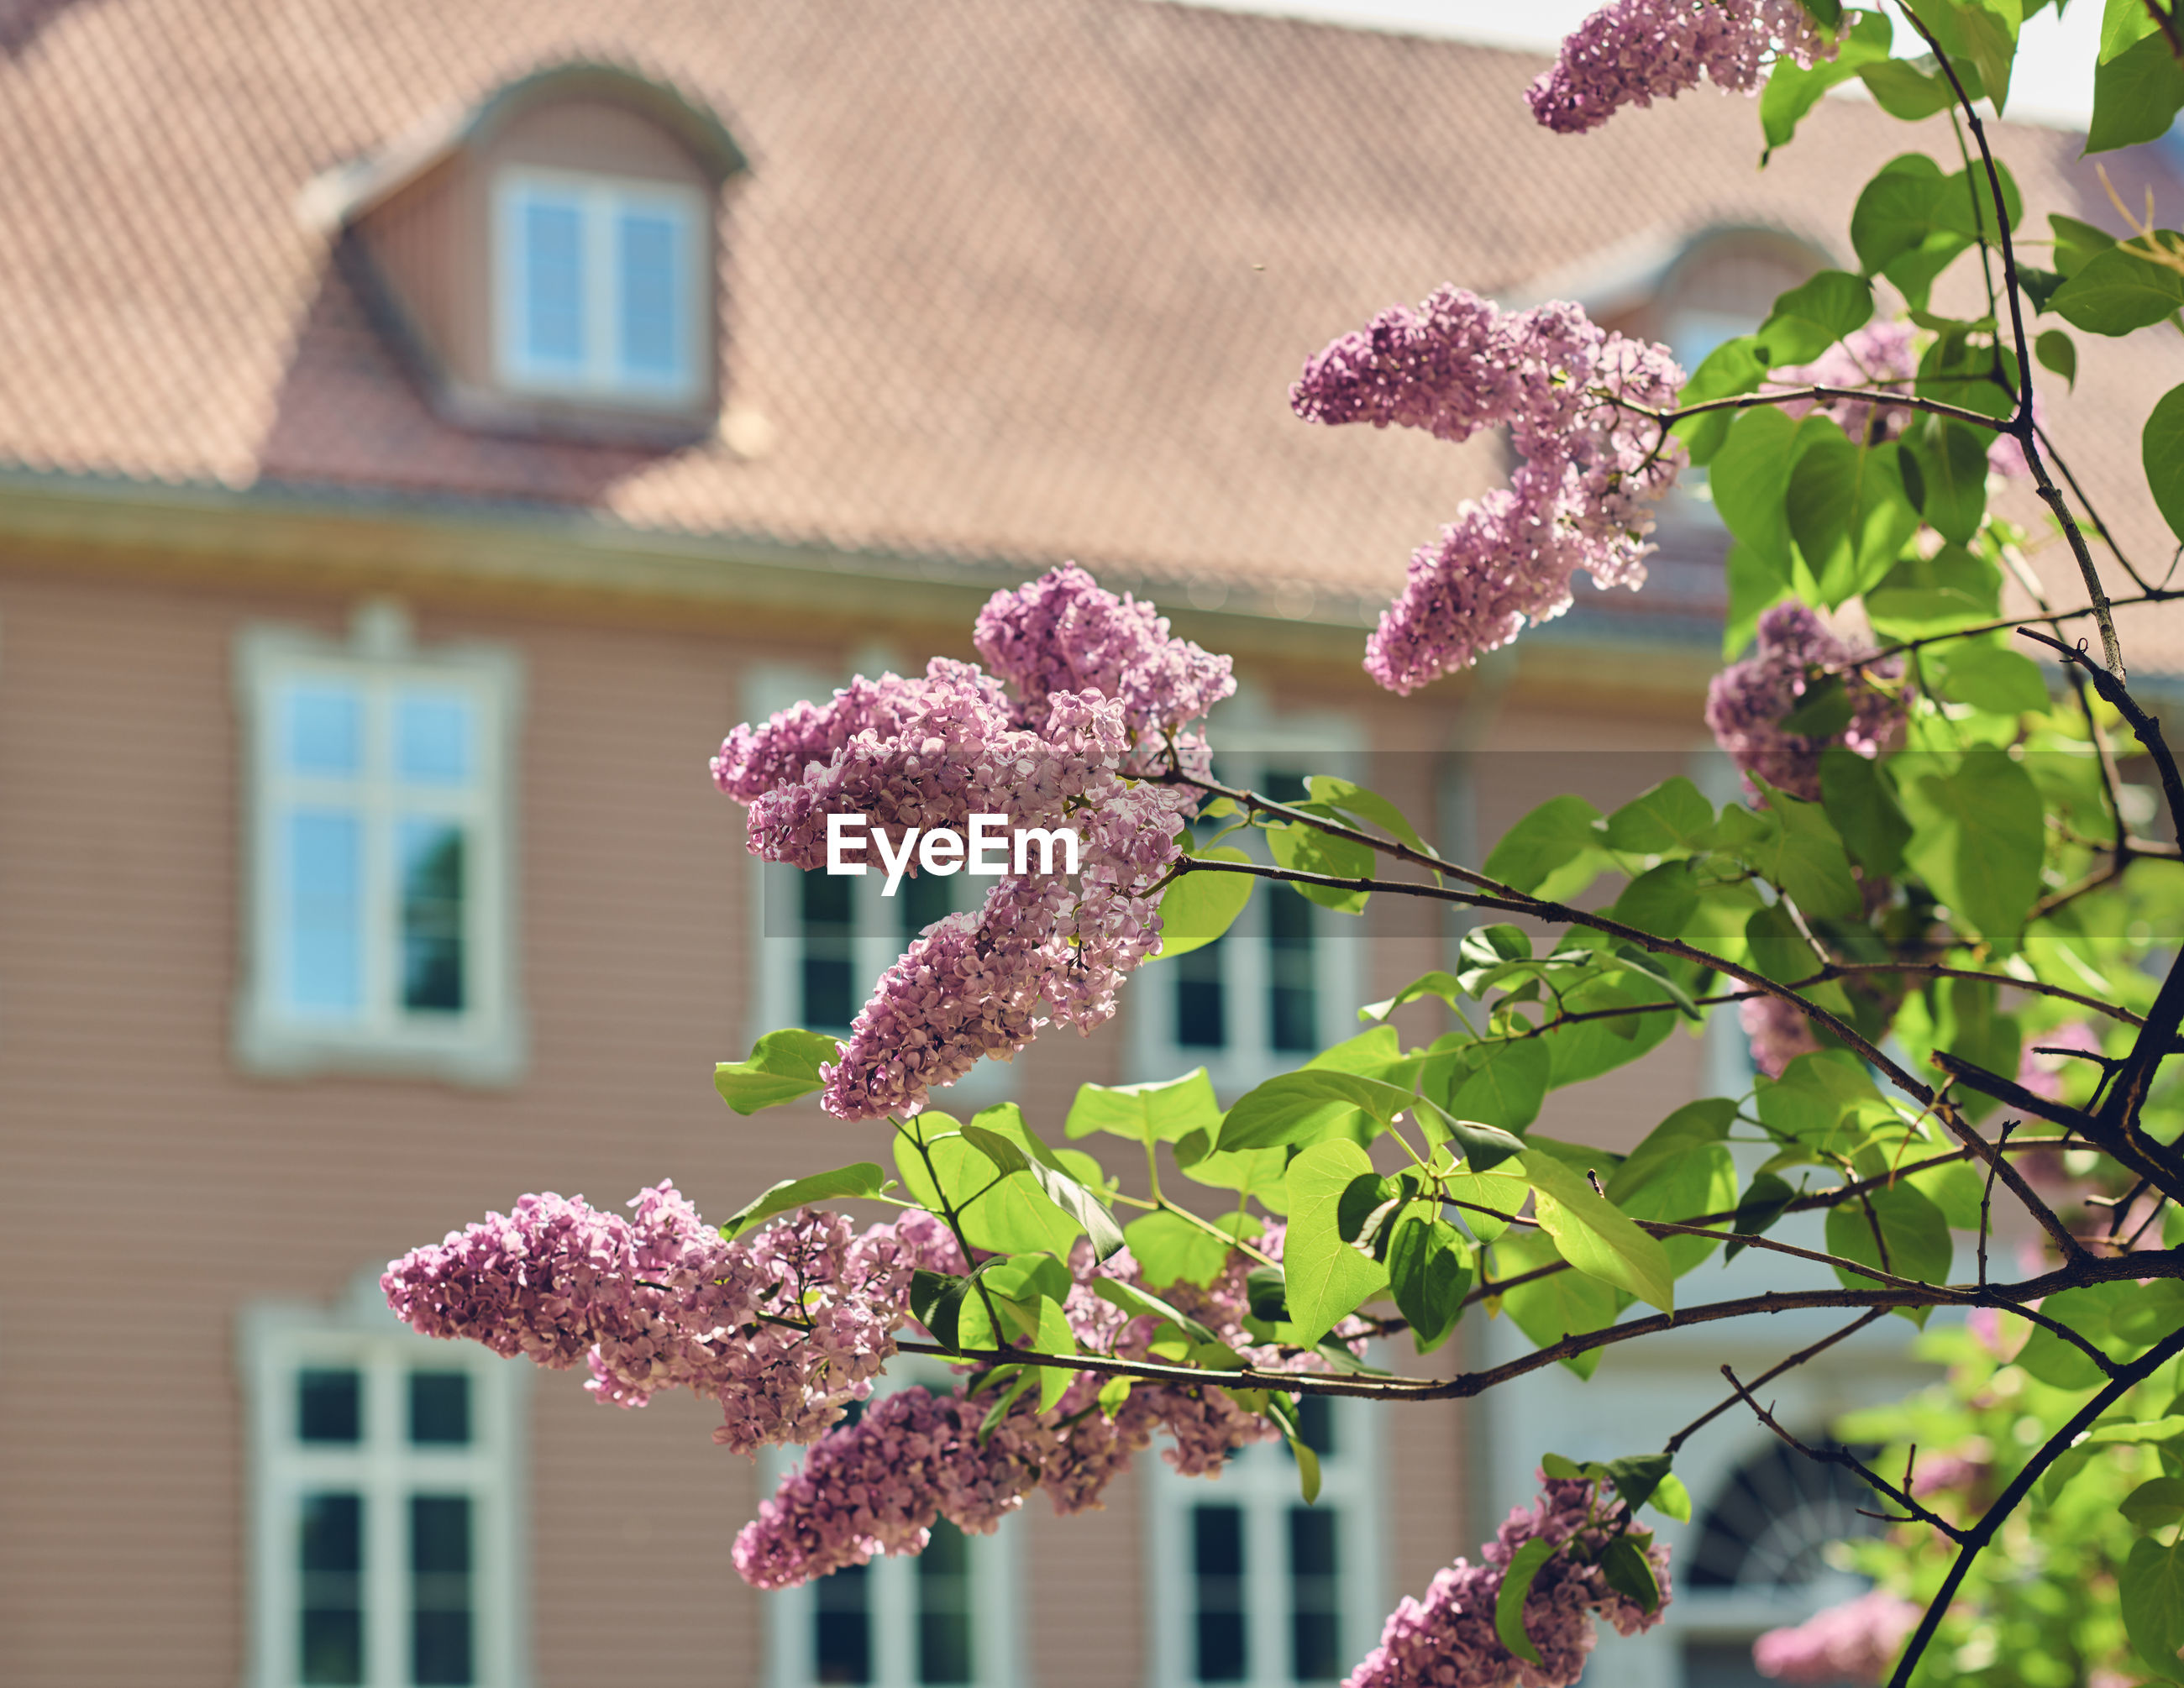 PINK FLOWERING PLANT AGAINST HOUSE